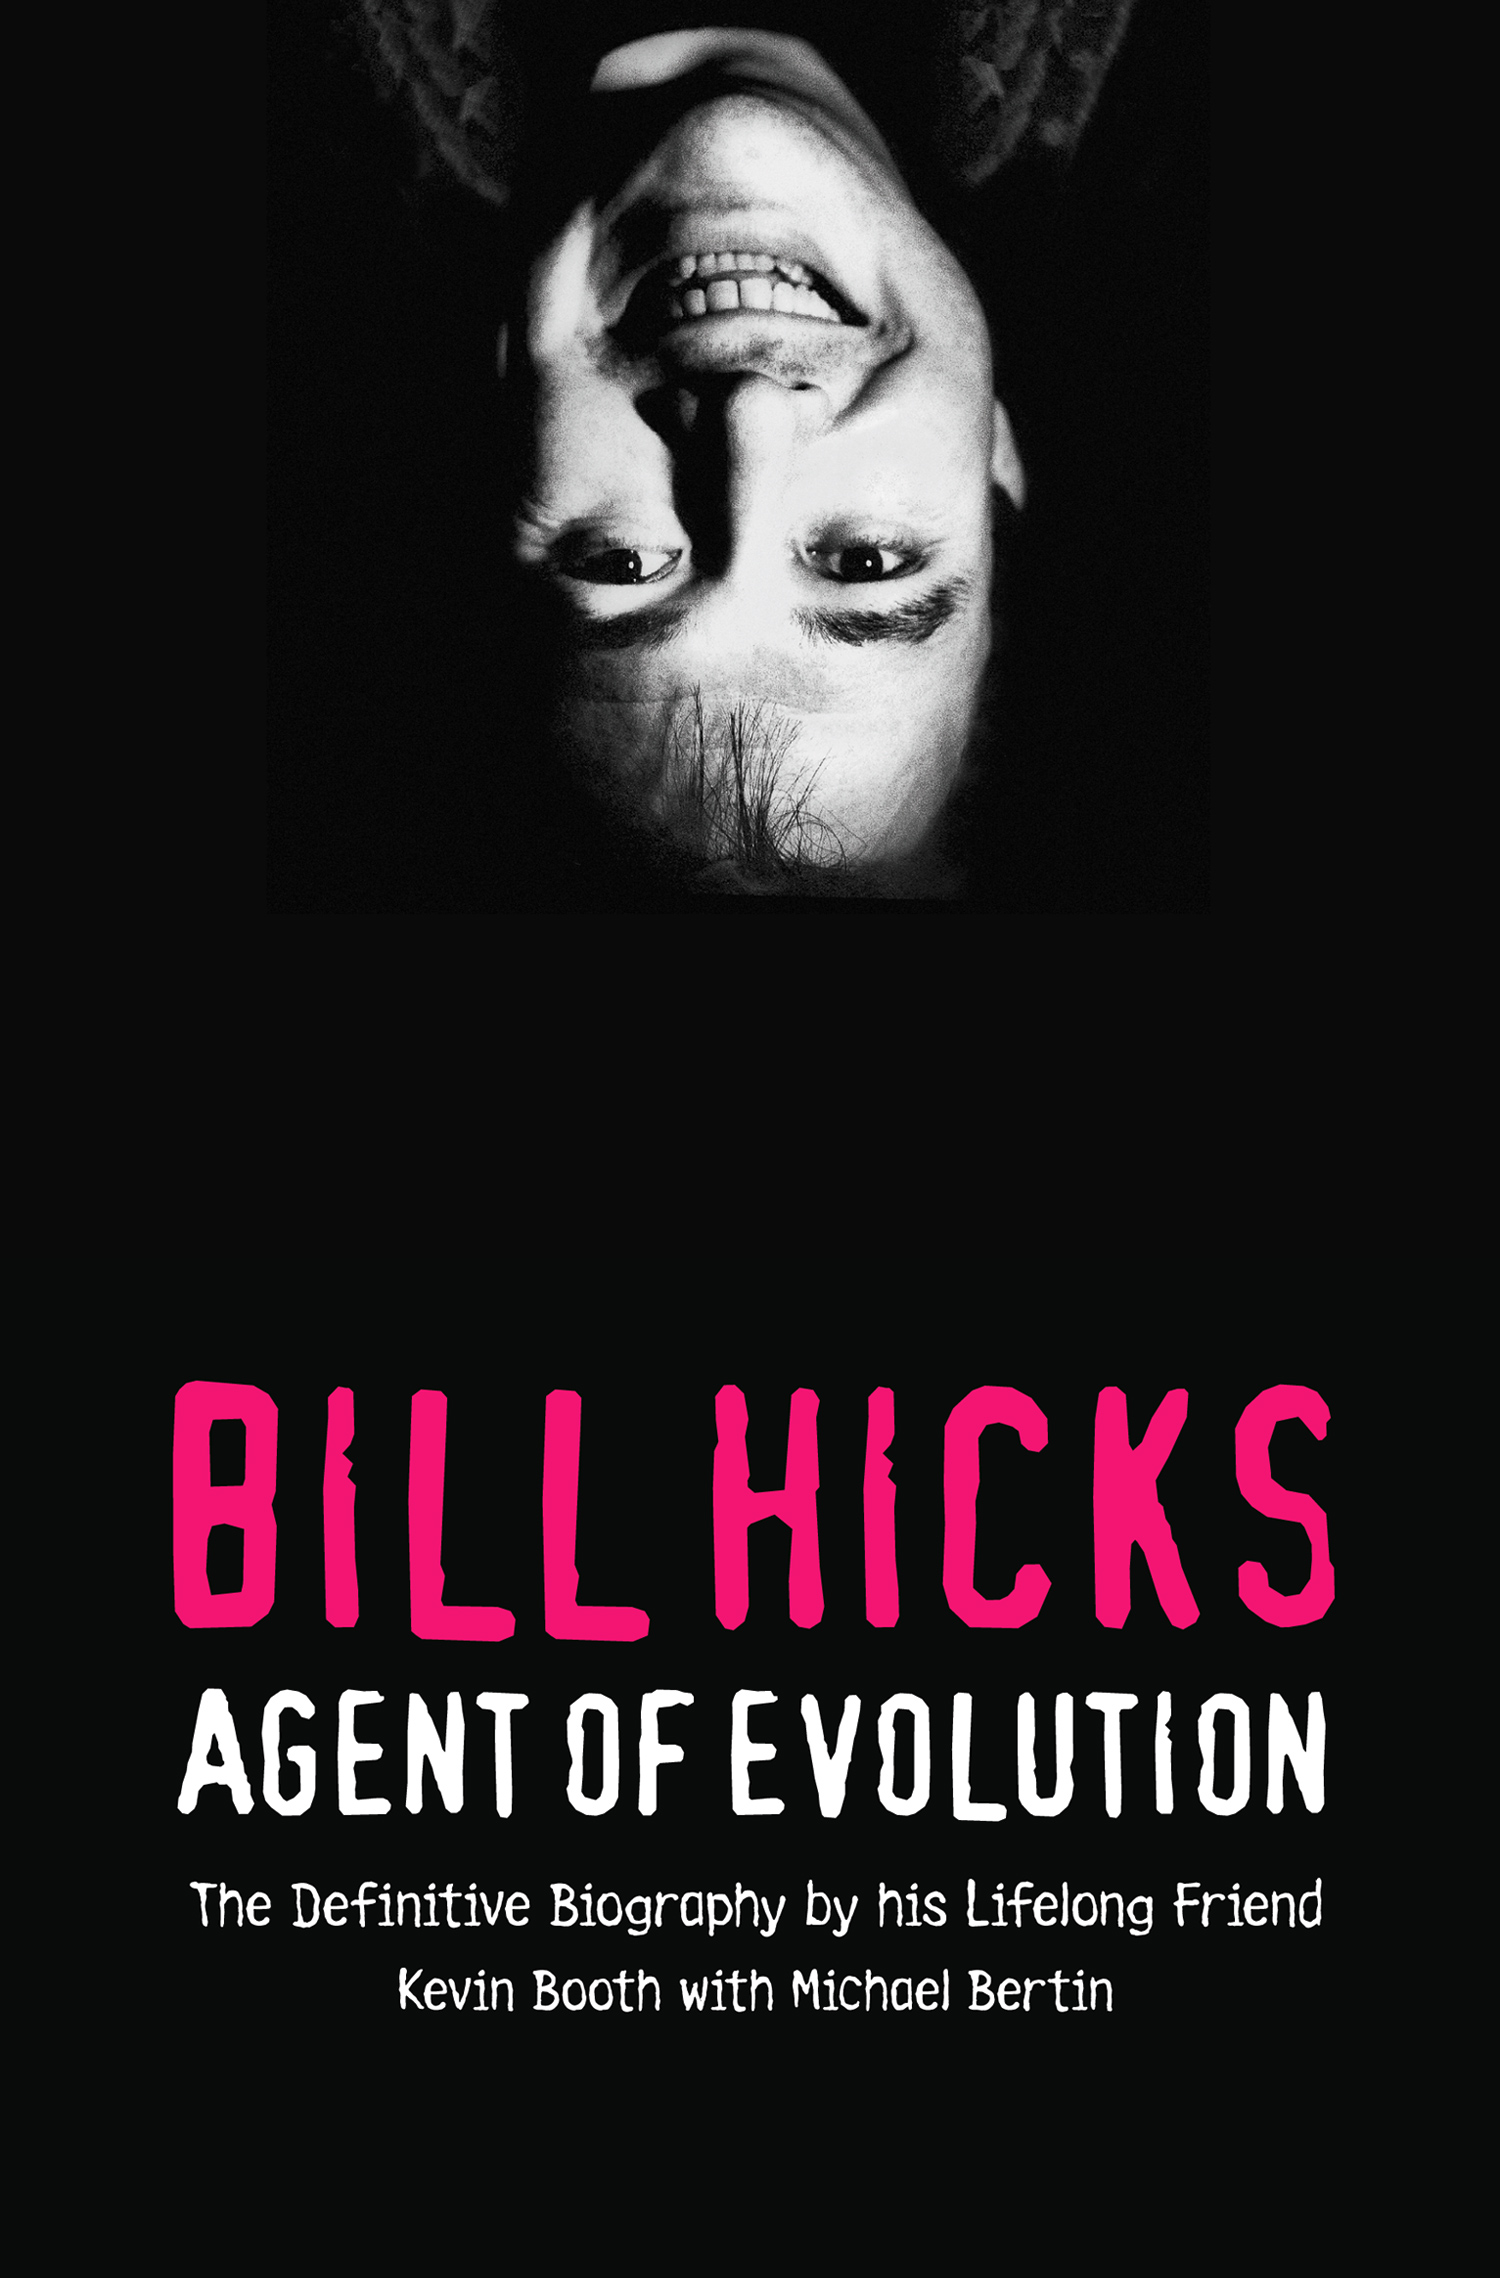 Bill Hicks: Agent of Evolution